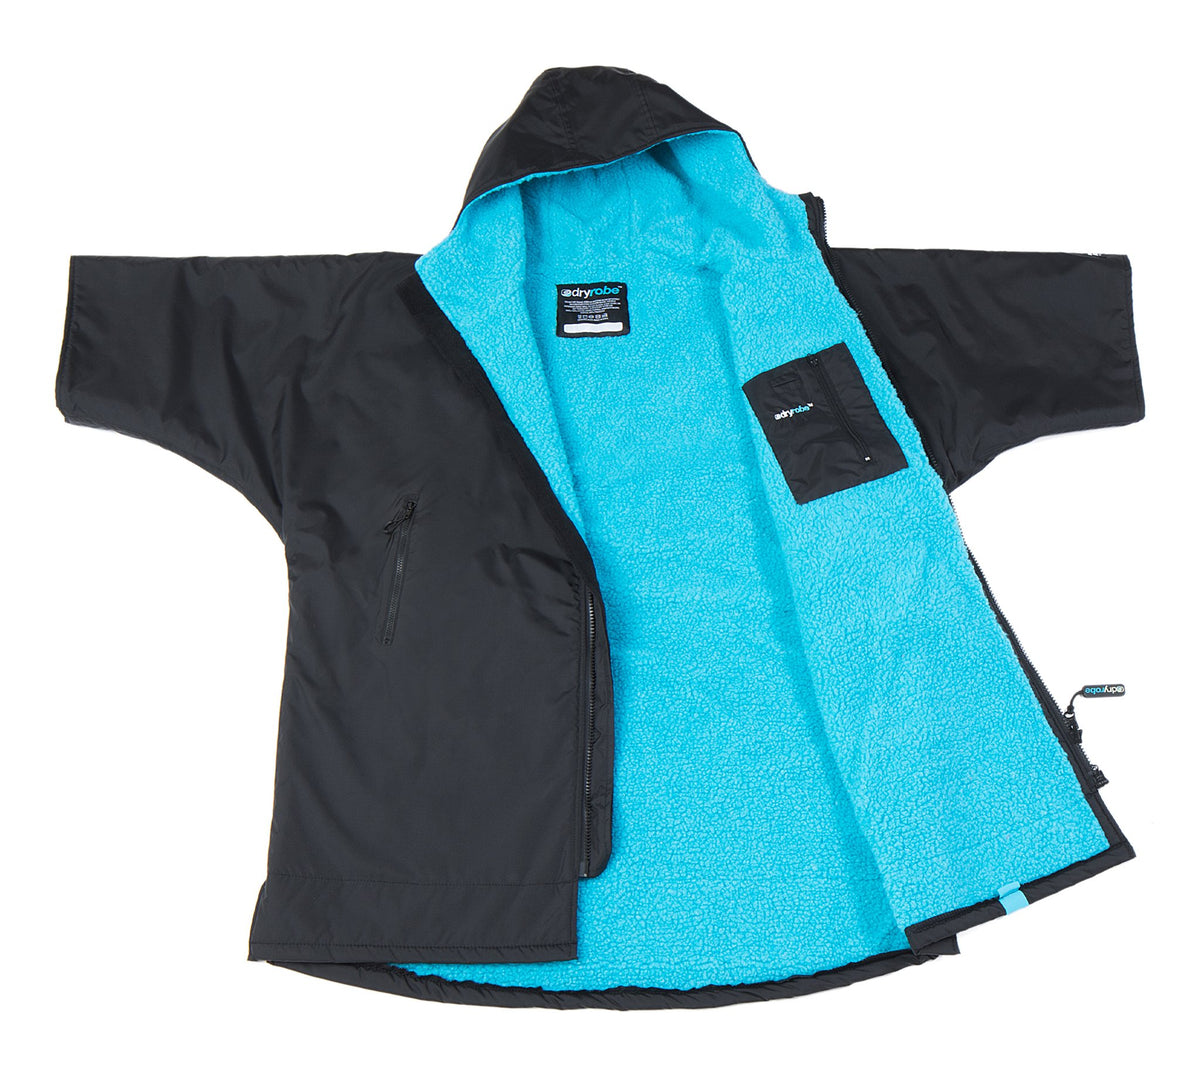 1|S, Kids dryrobe Advance Short Sleeve Black Blue Open